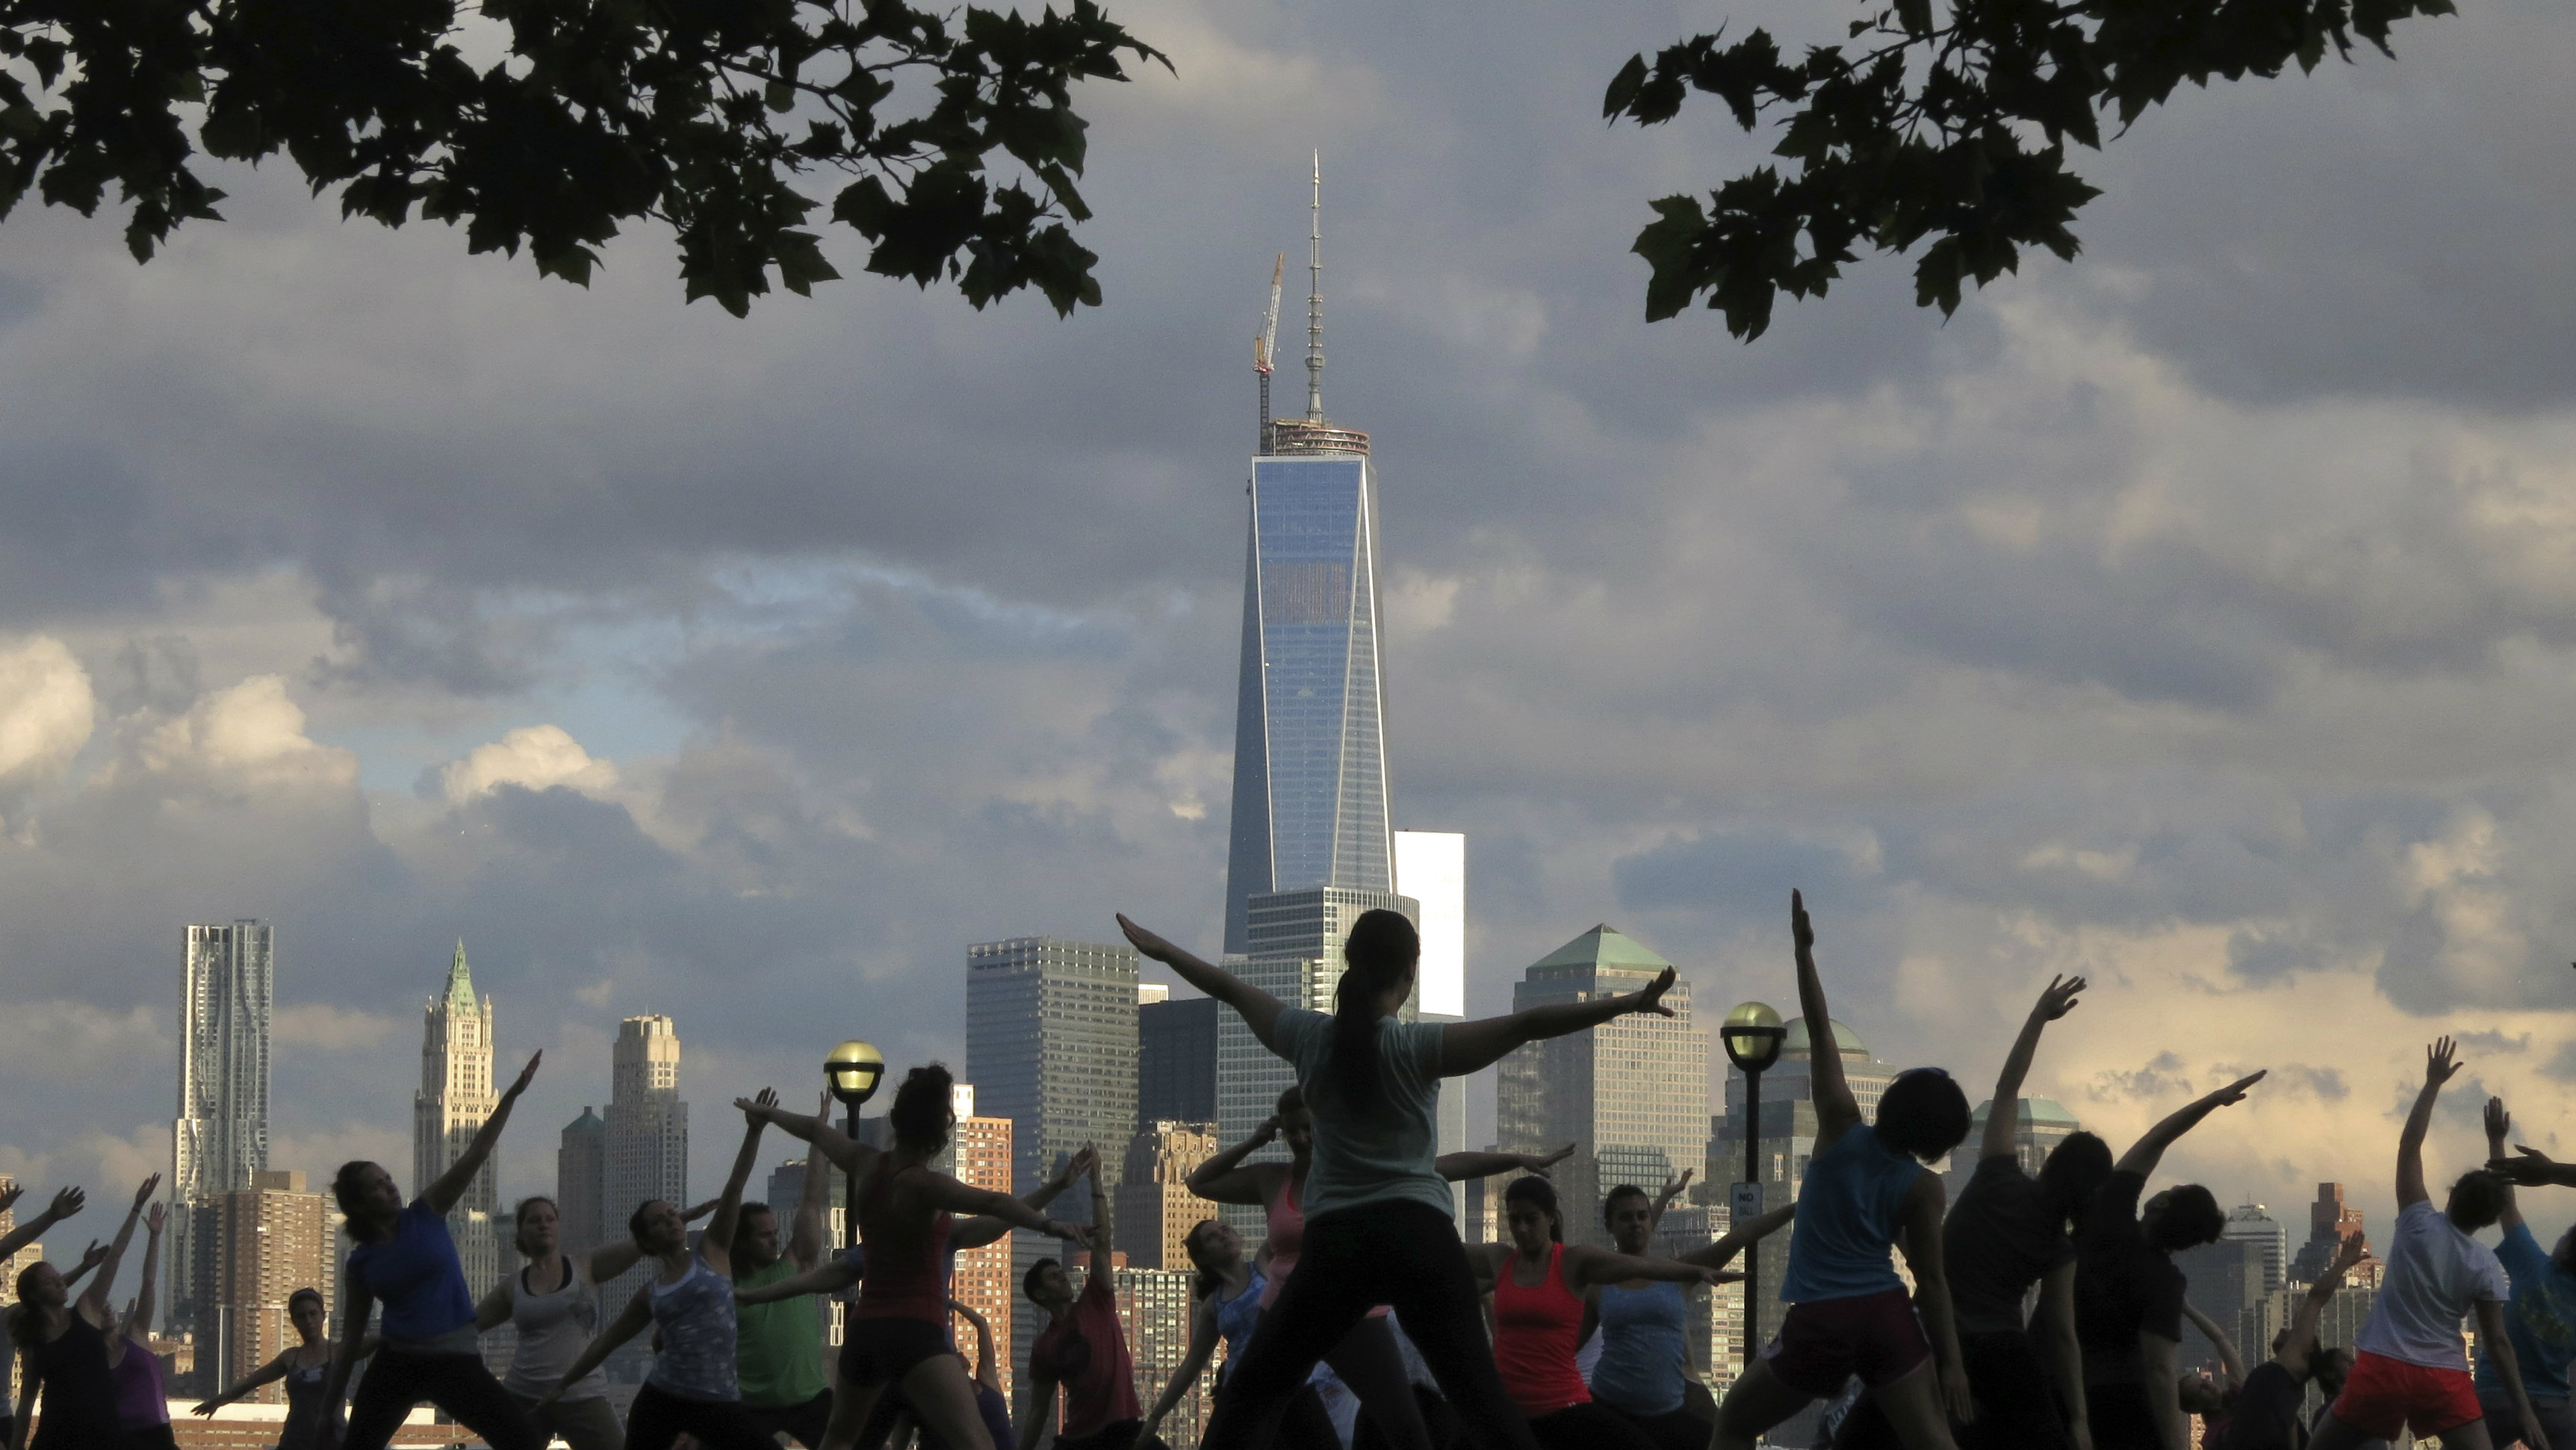 The Lower Manhattan skyline is seen in the distance during a weekly evening yoga class in a park along the Hudson River in Hoboken, New Jersey June 11, 2013.